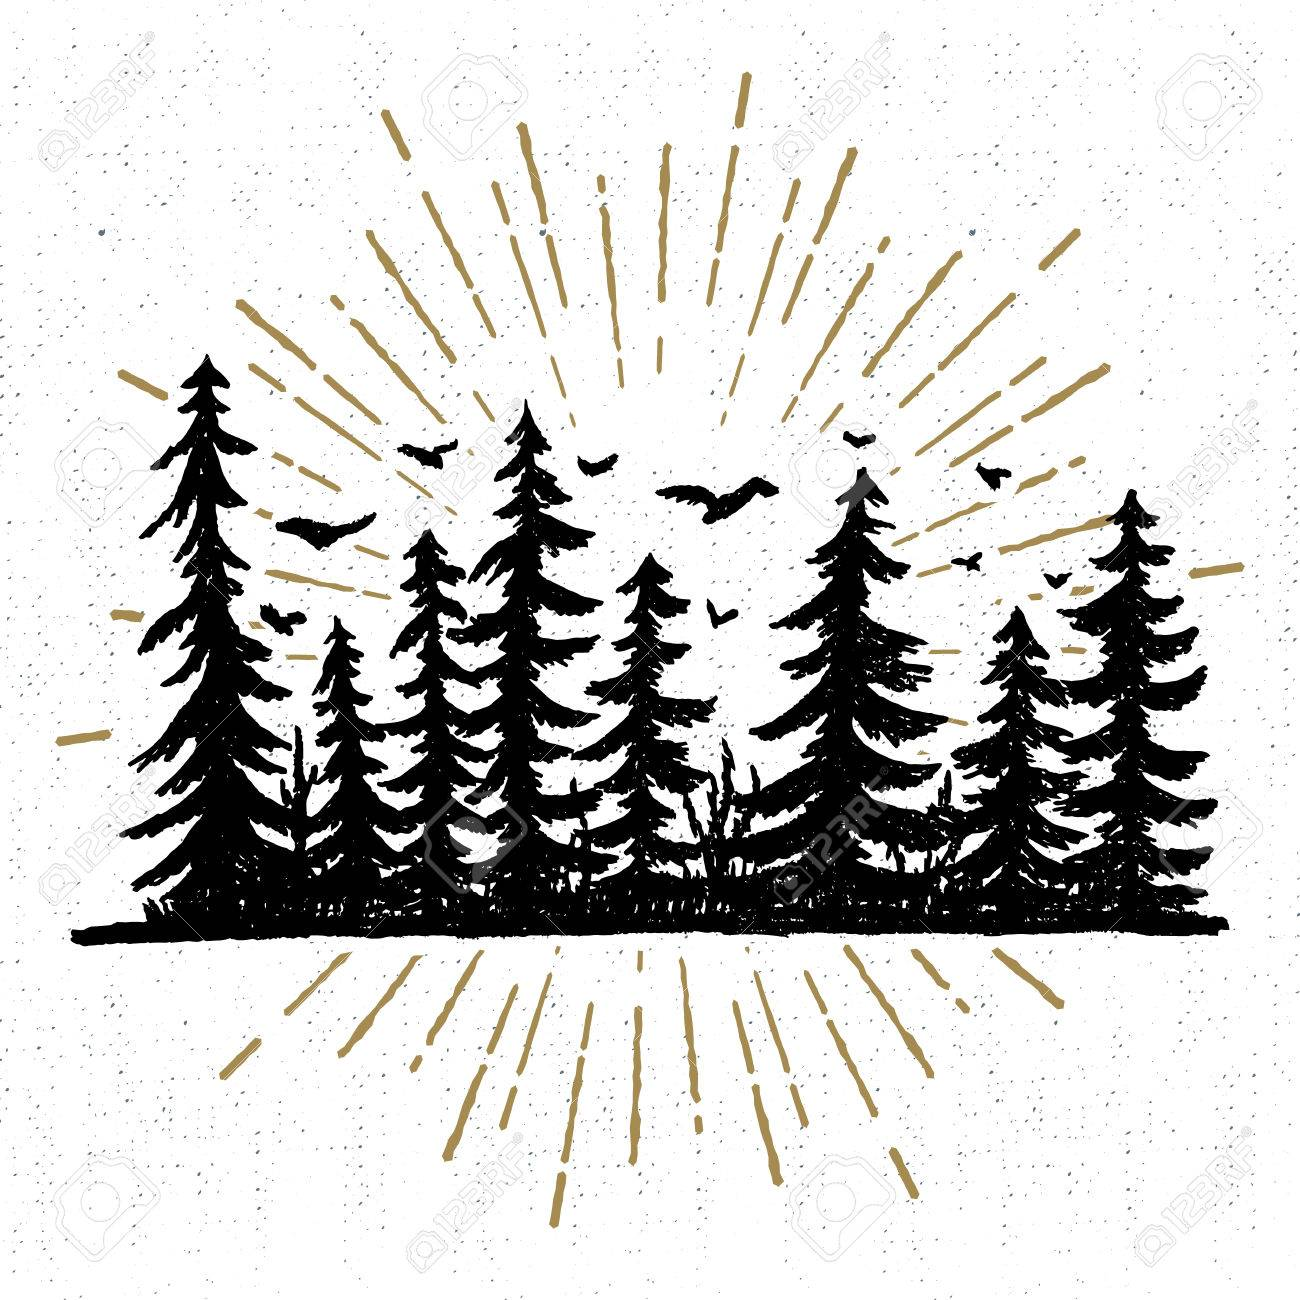 Hand drawn icon with a textured spruce trees vector illustration. - 60255329